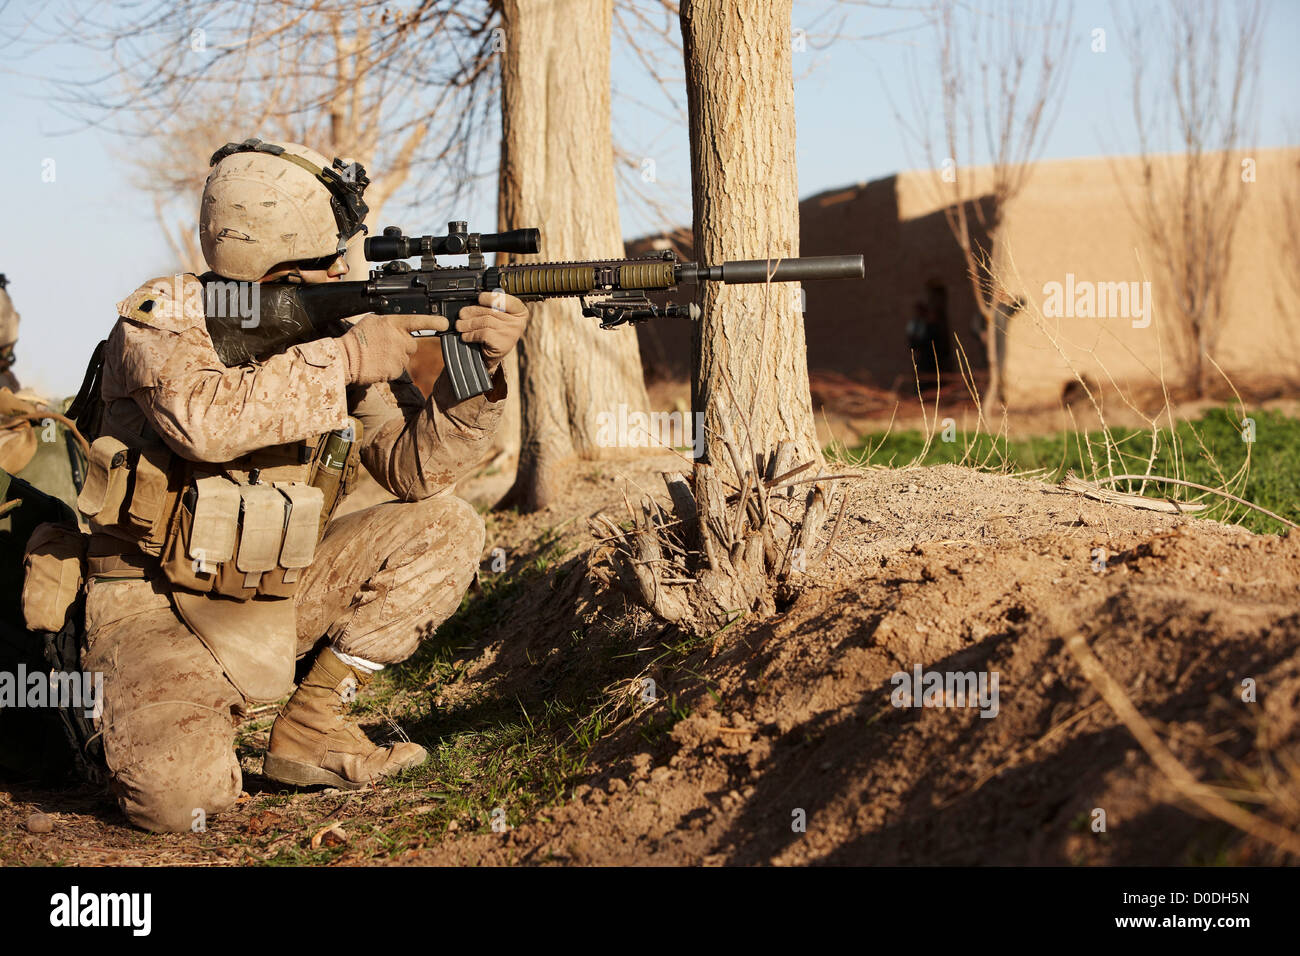 A U.S. Marine aims a Designated Marksman Rifle during a combat operation in Afghanistan's Helmand Province - Stock Image